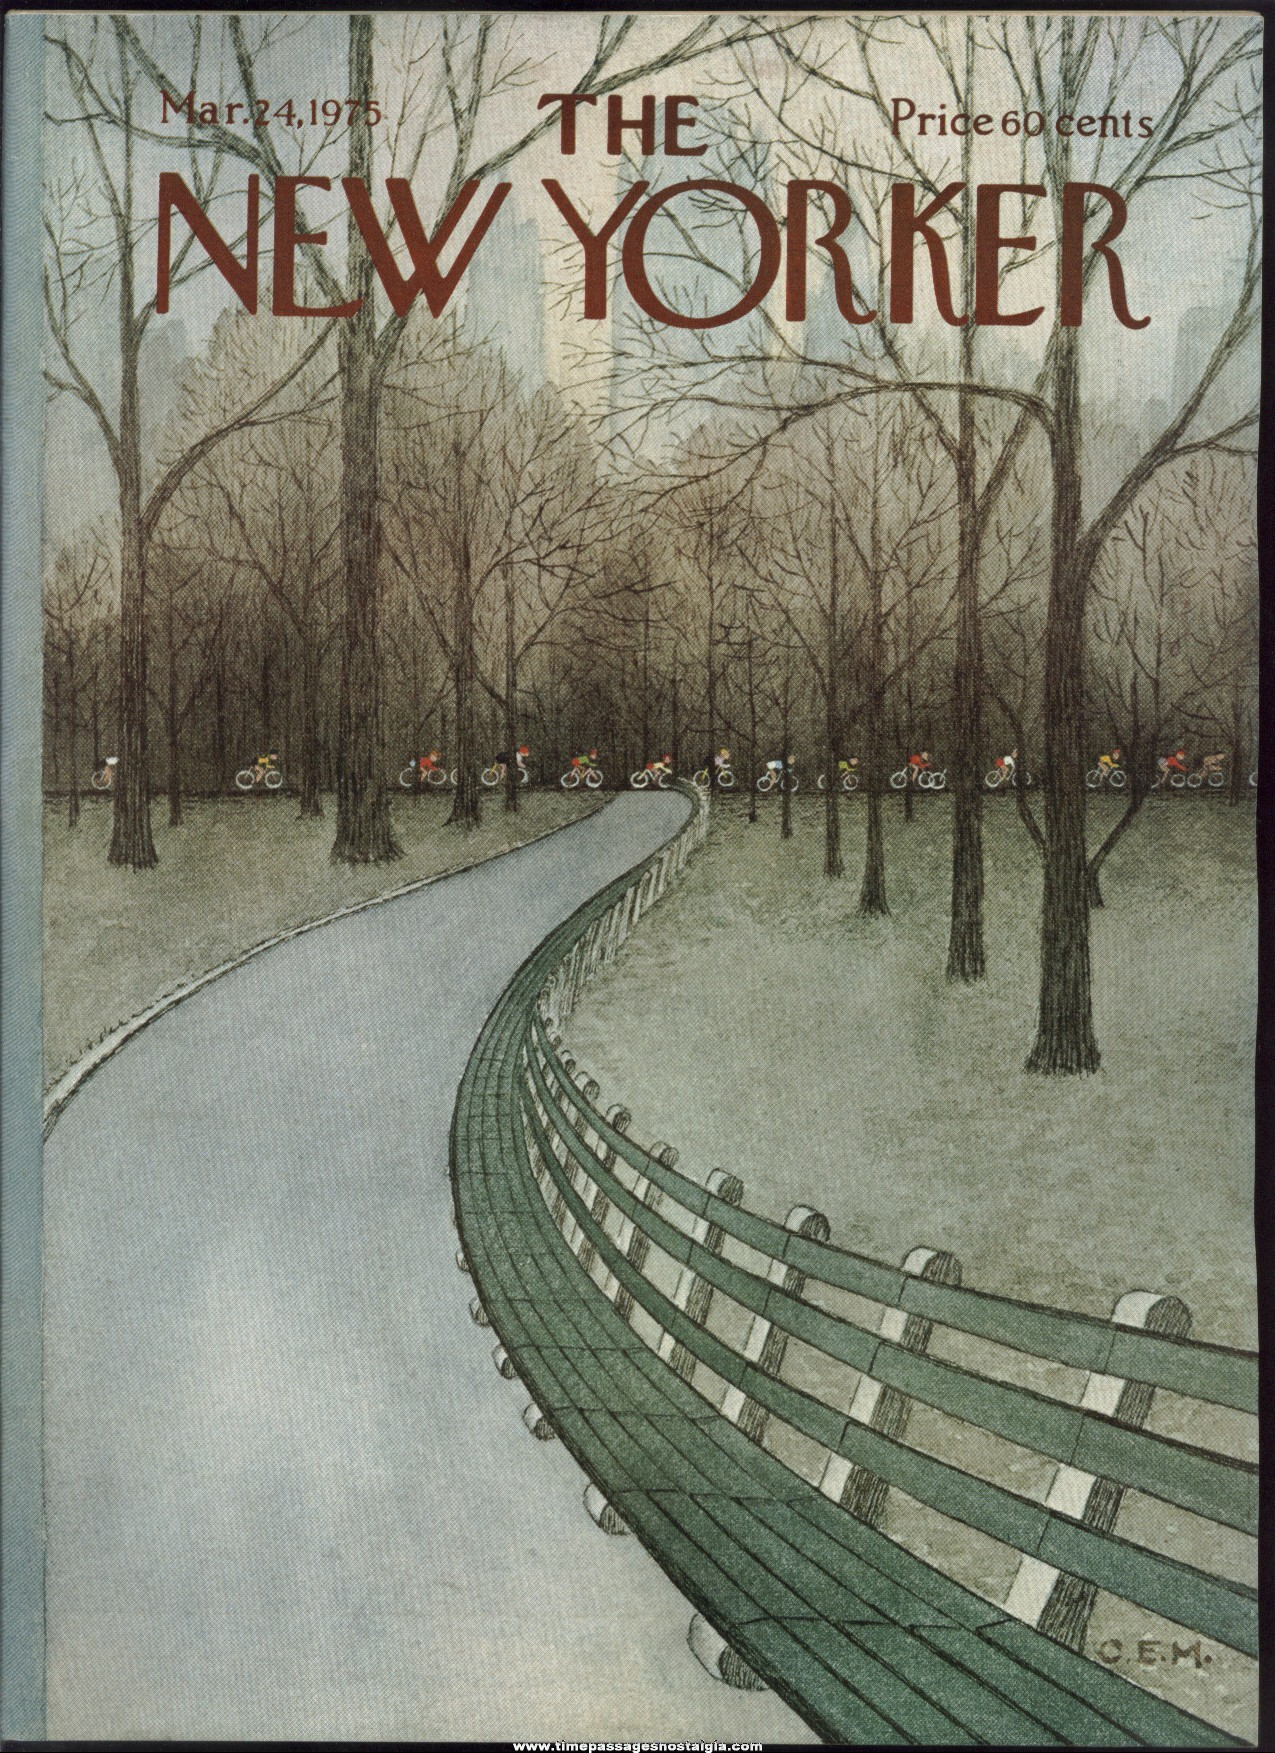 New Yorker Magazine - March 24, 1975 - Cover by Charles E. Martin